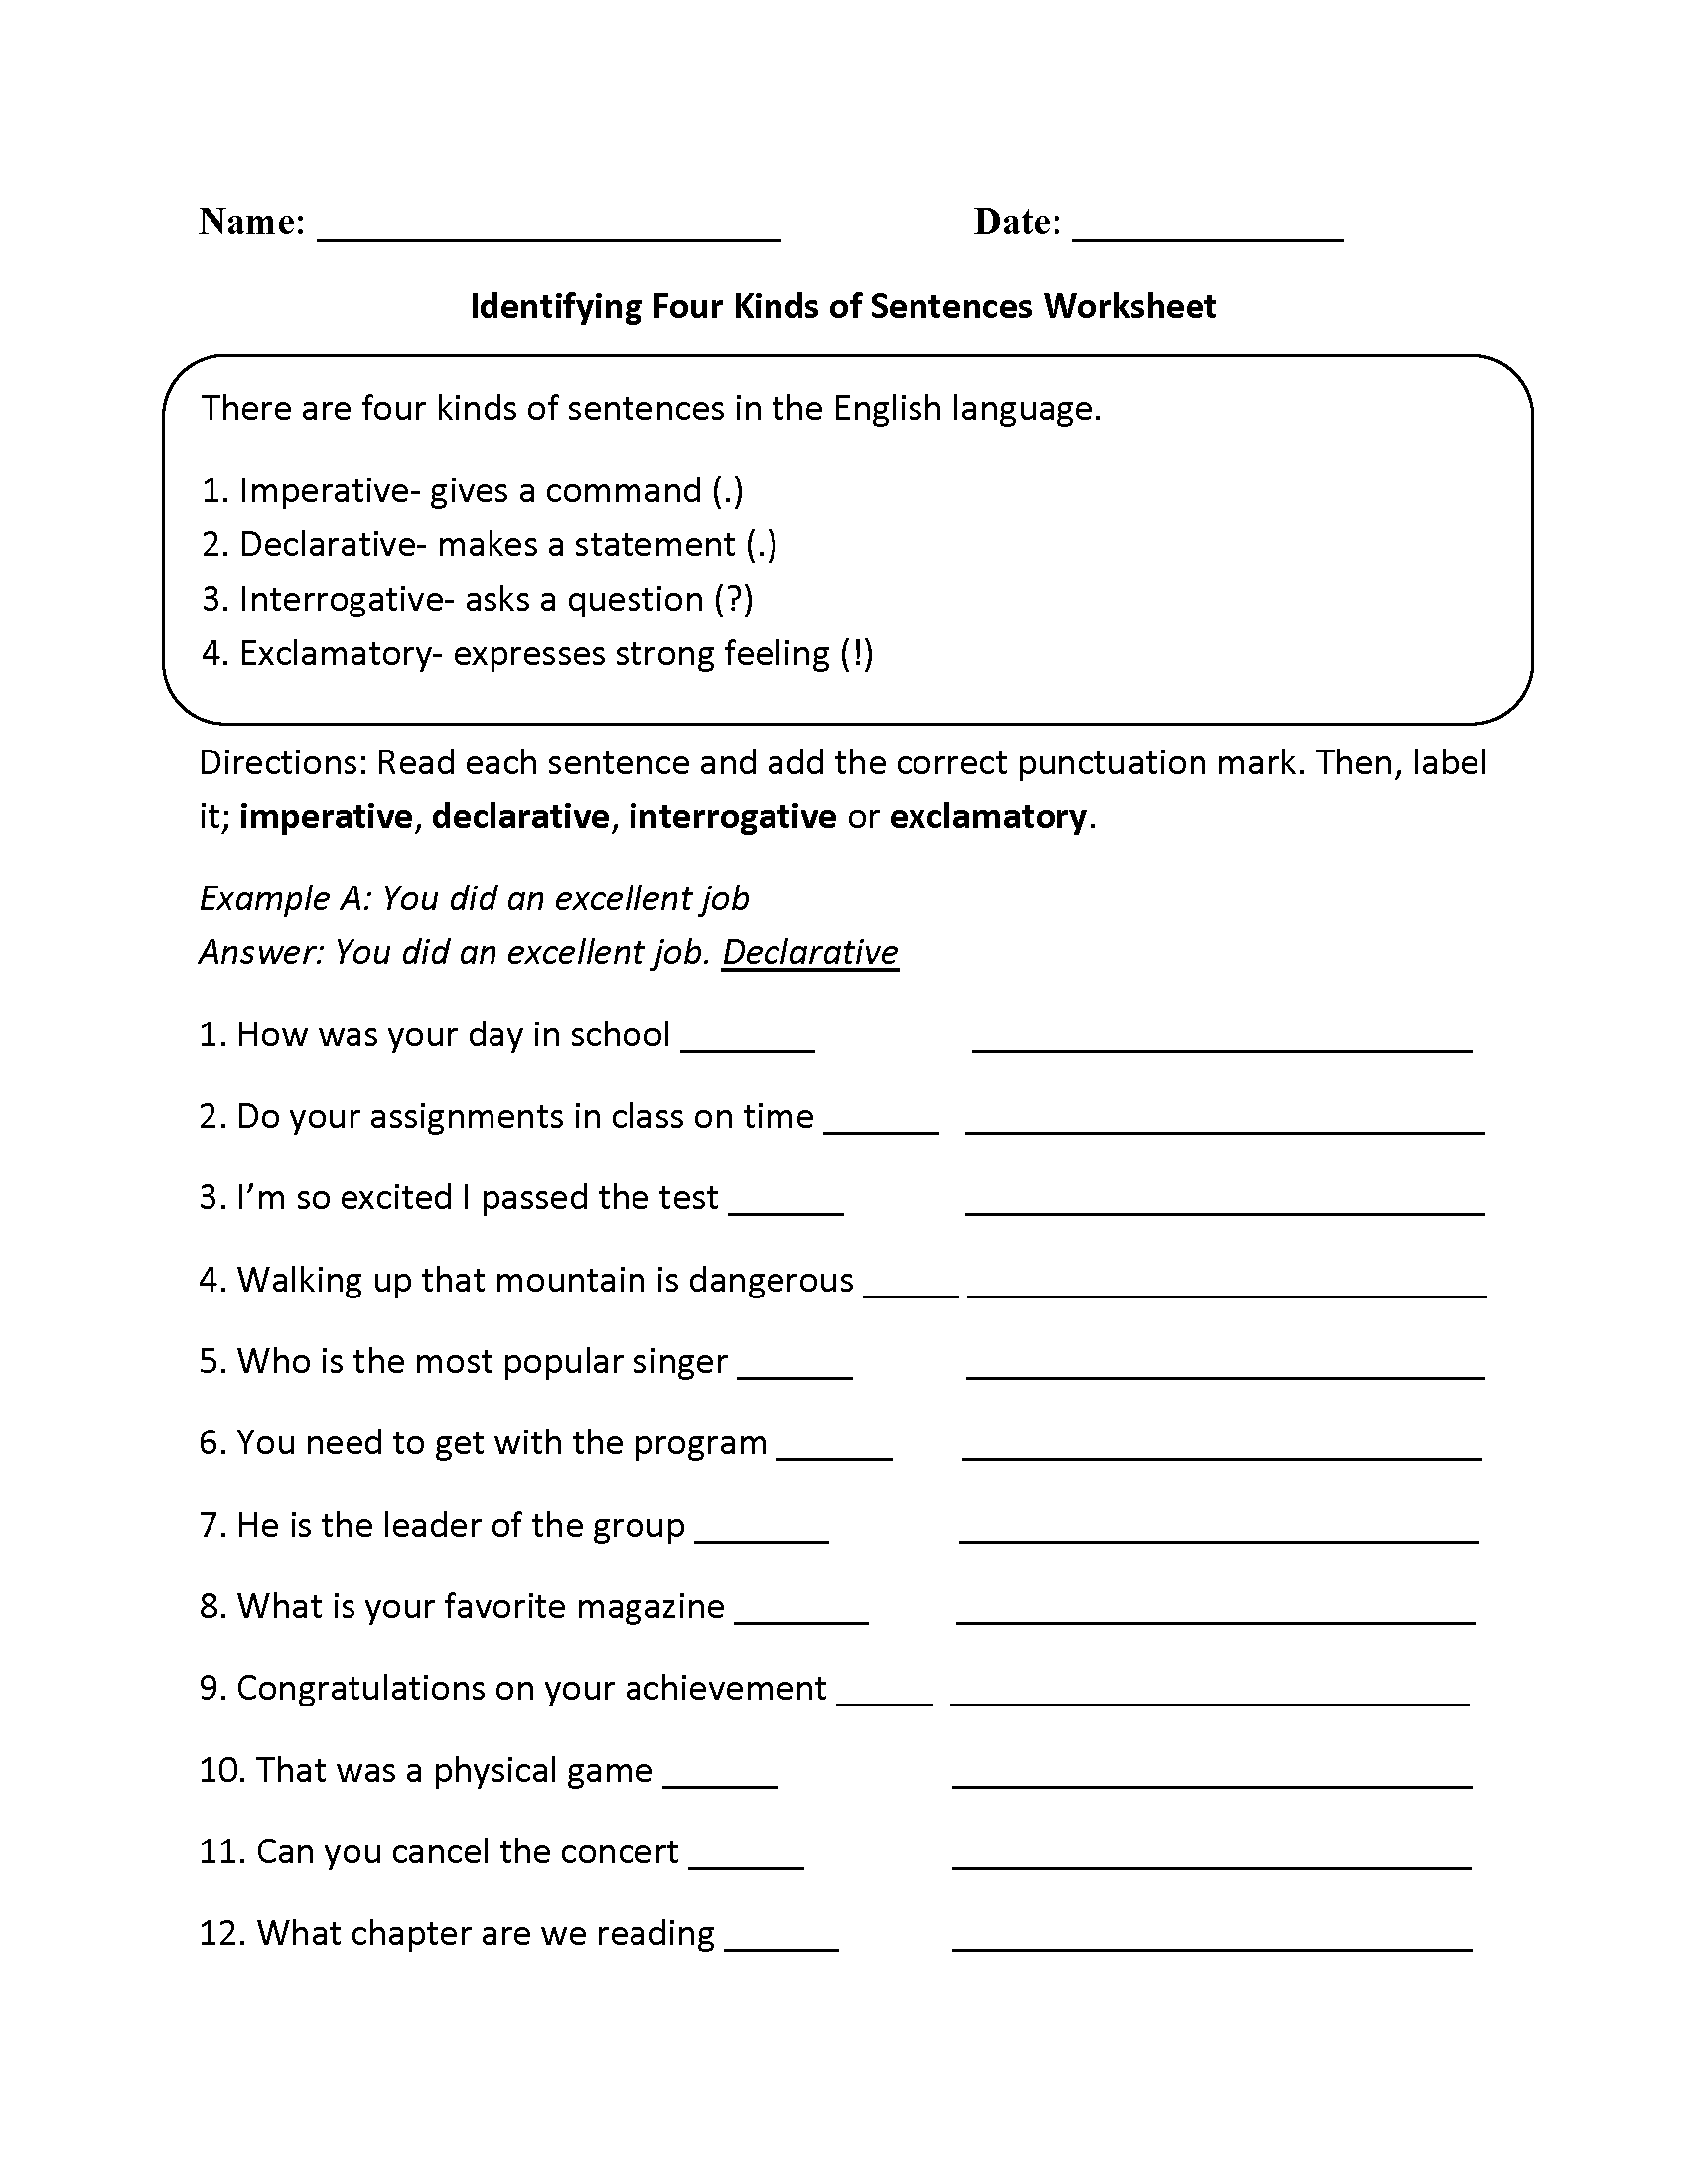 worksheet 4 Types Of Sentences Worksheets sentences worksheets kinds of four worksheet